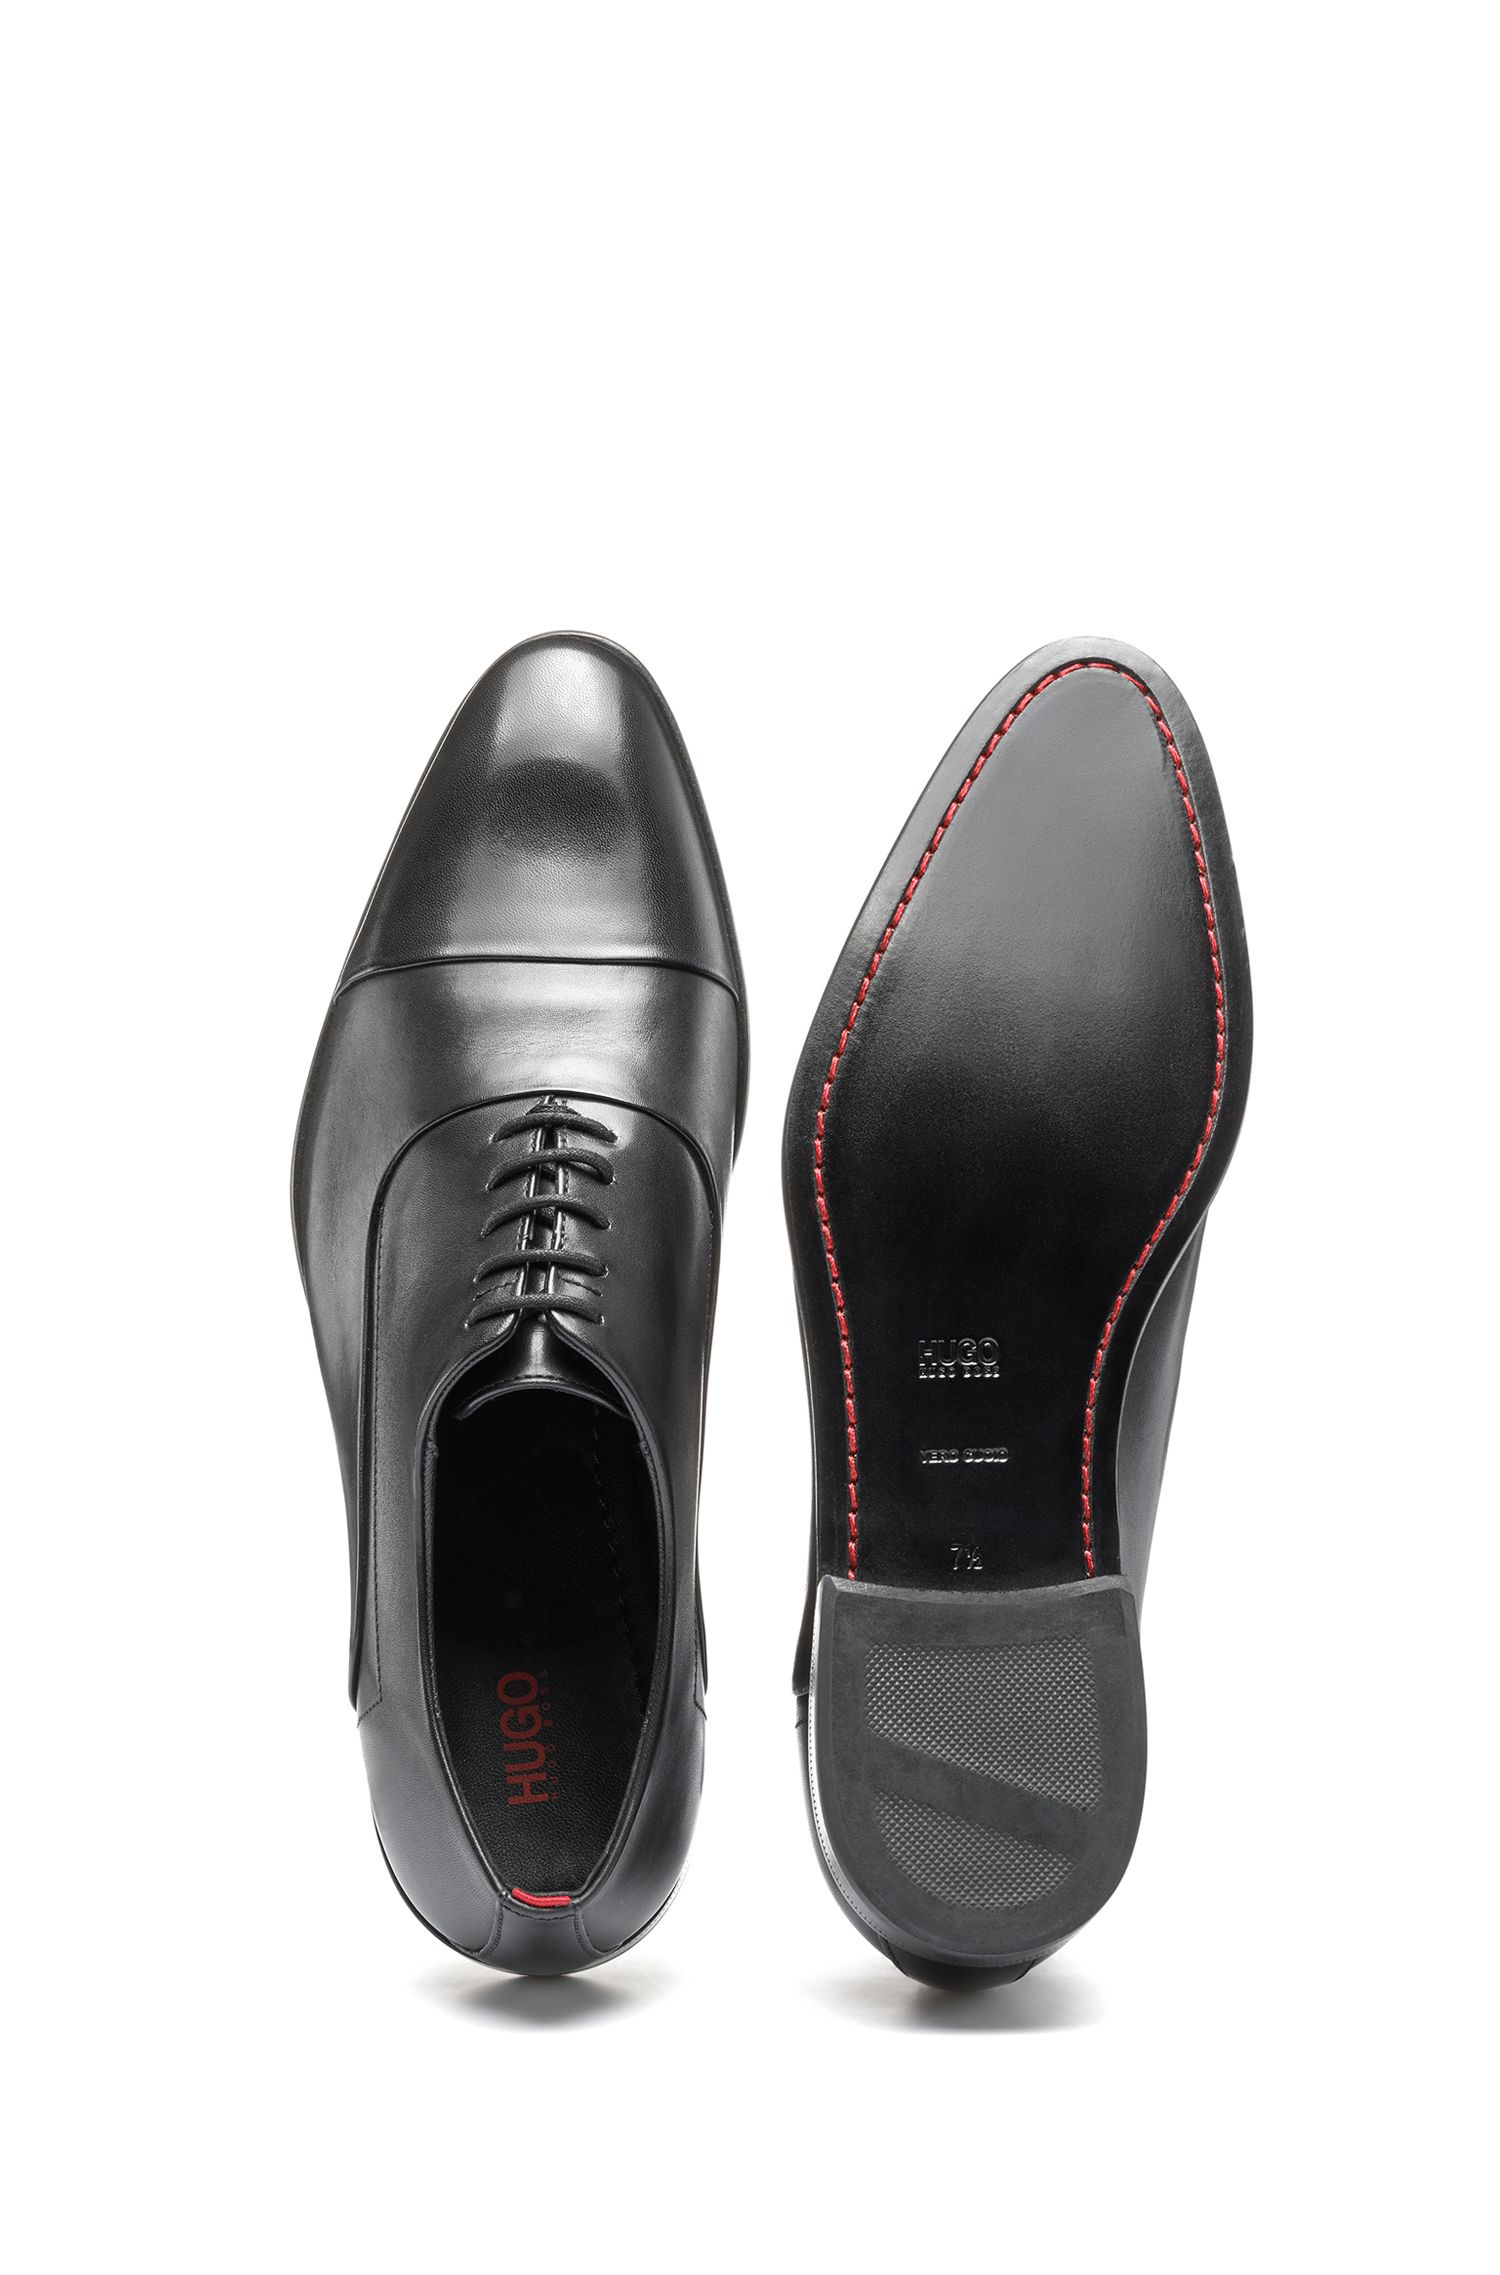 Oxford shoes in smooth calf leather